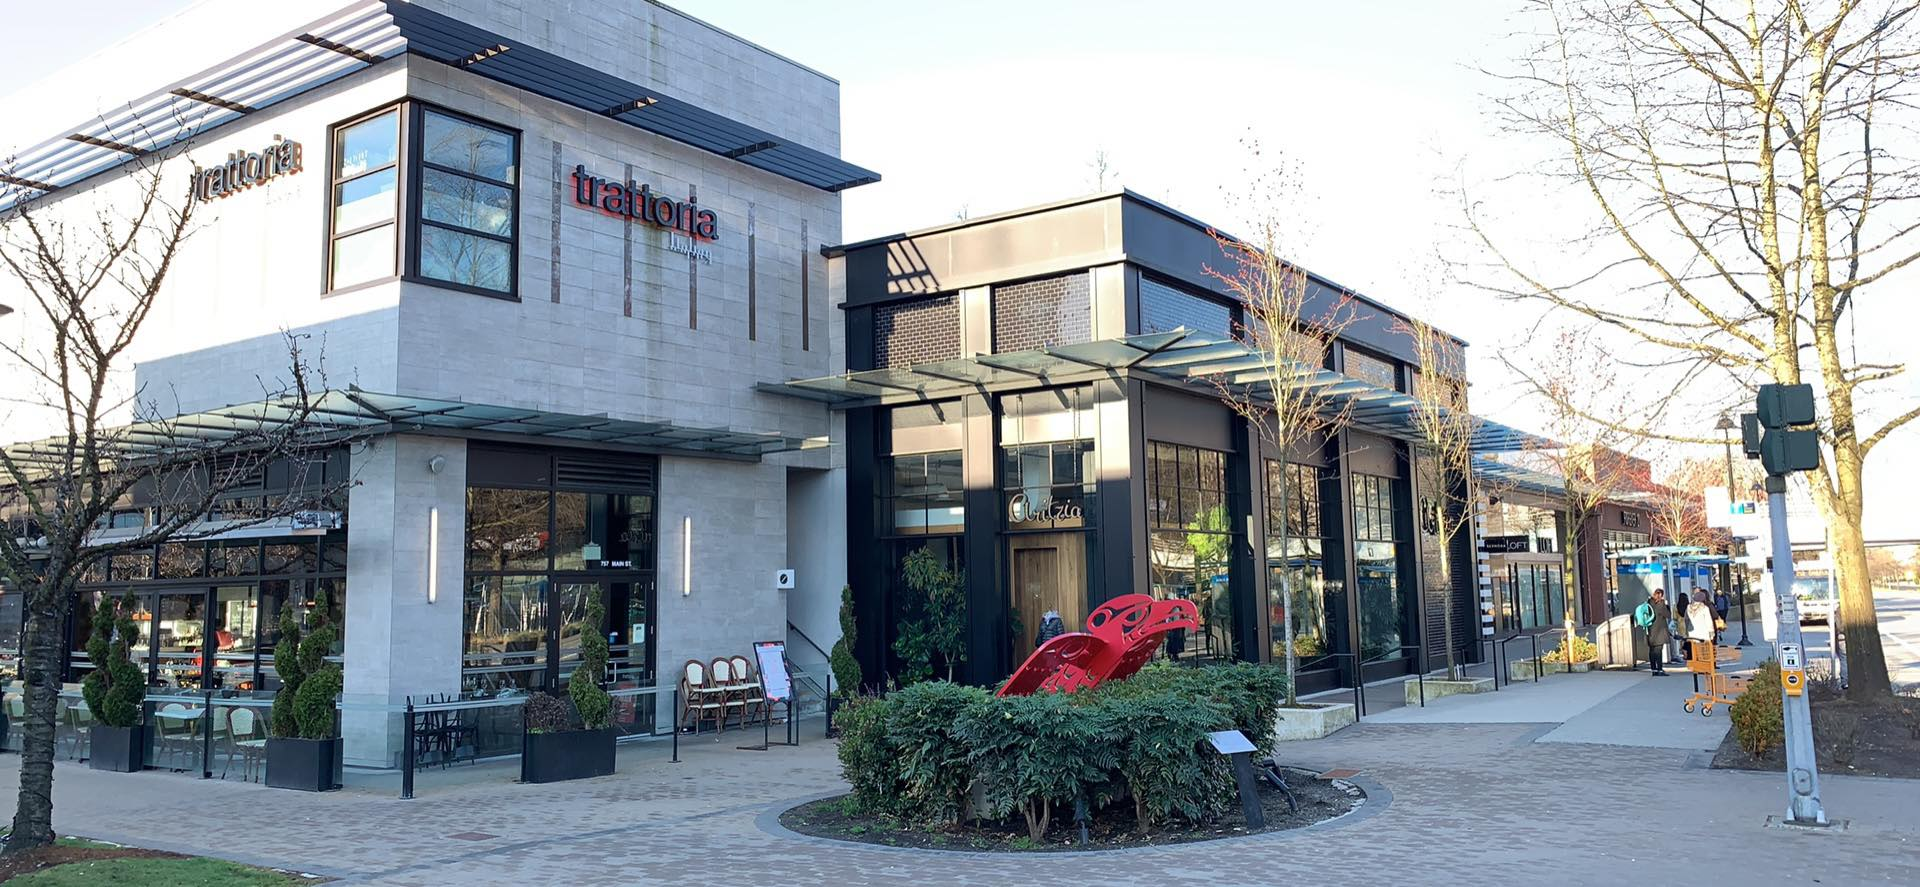 Trattoria (Italian Kitchen), Aritzia and Forever 21 in PARK ROYAL SOUTH. PHOTO: LEE RIVETT